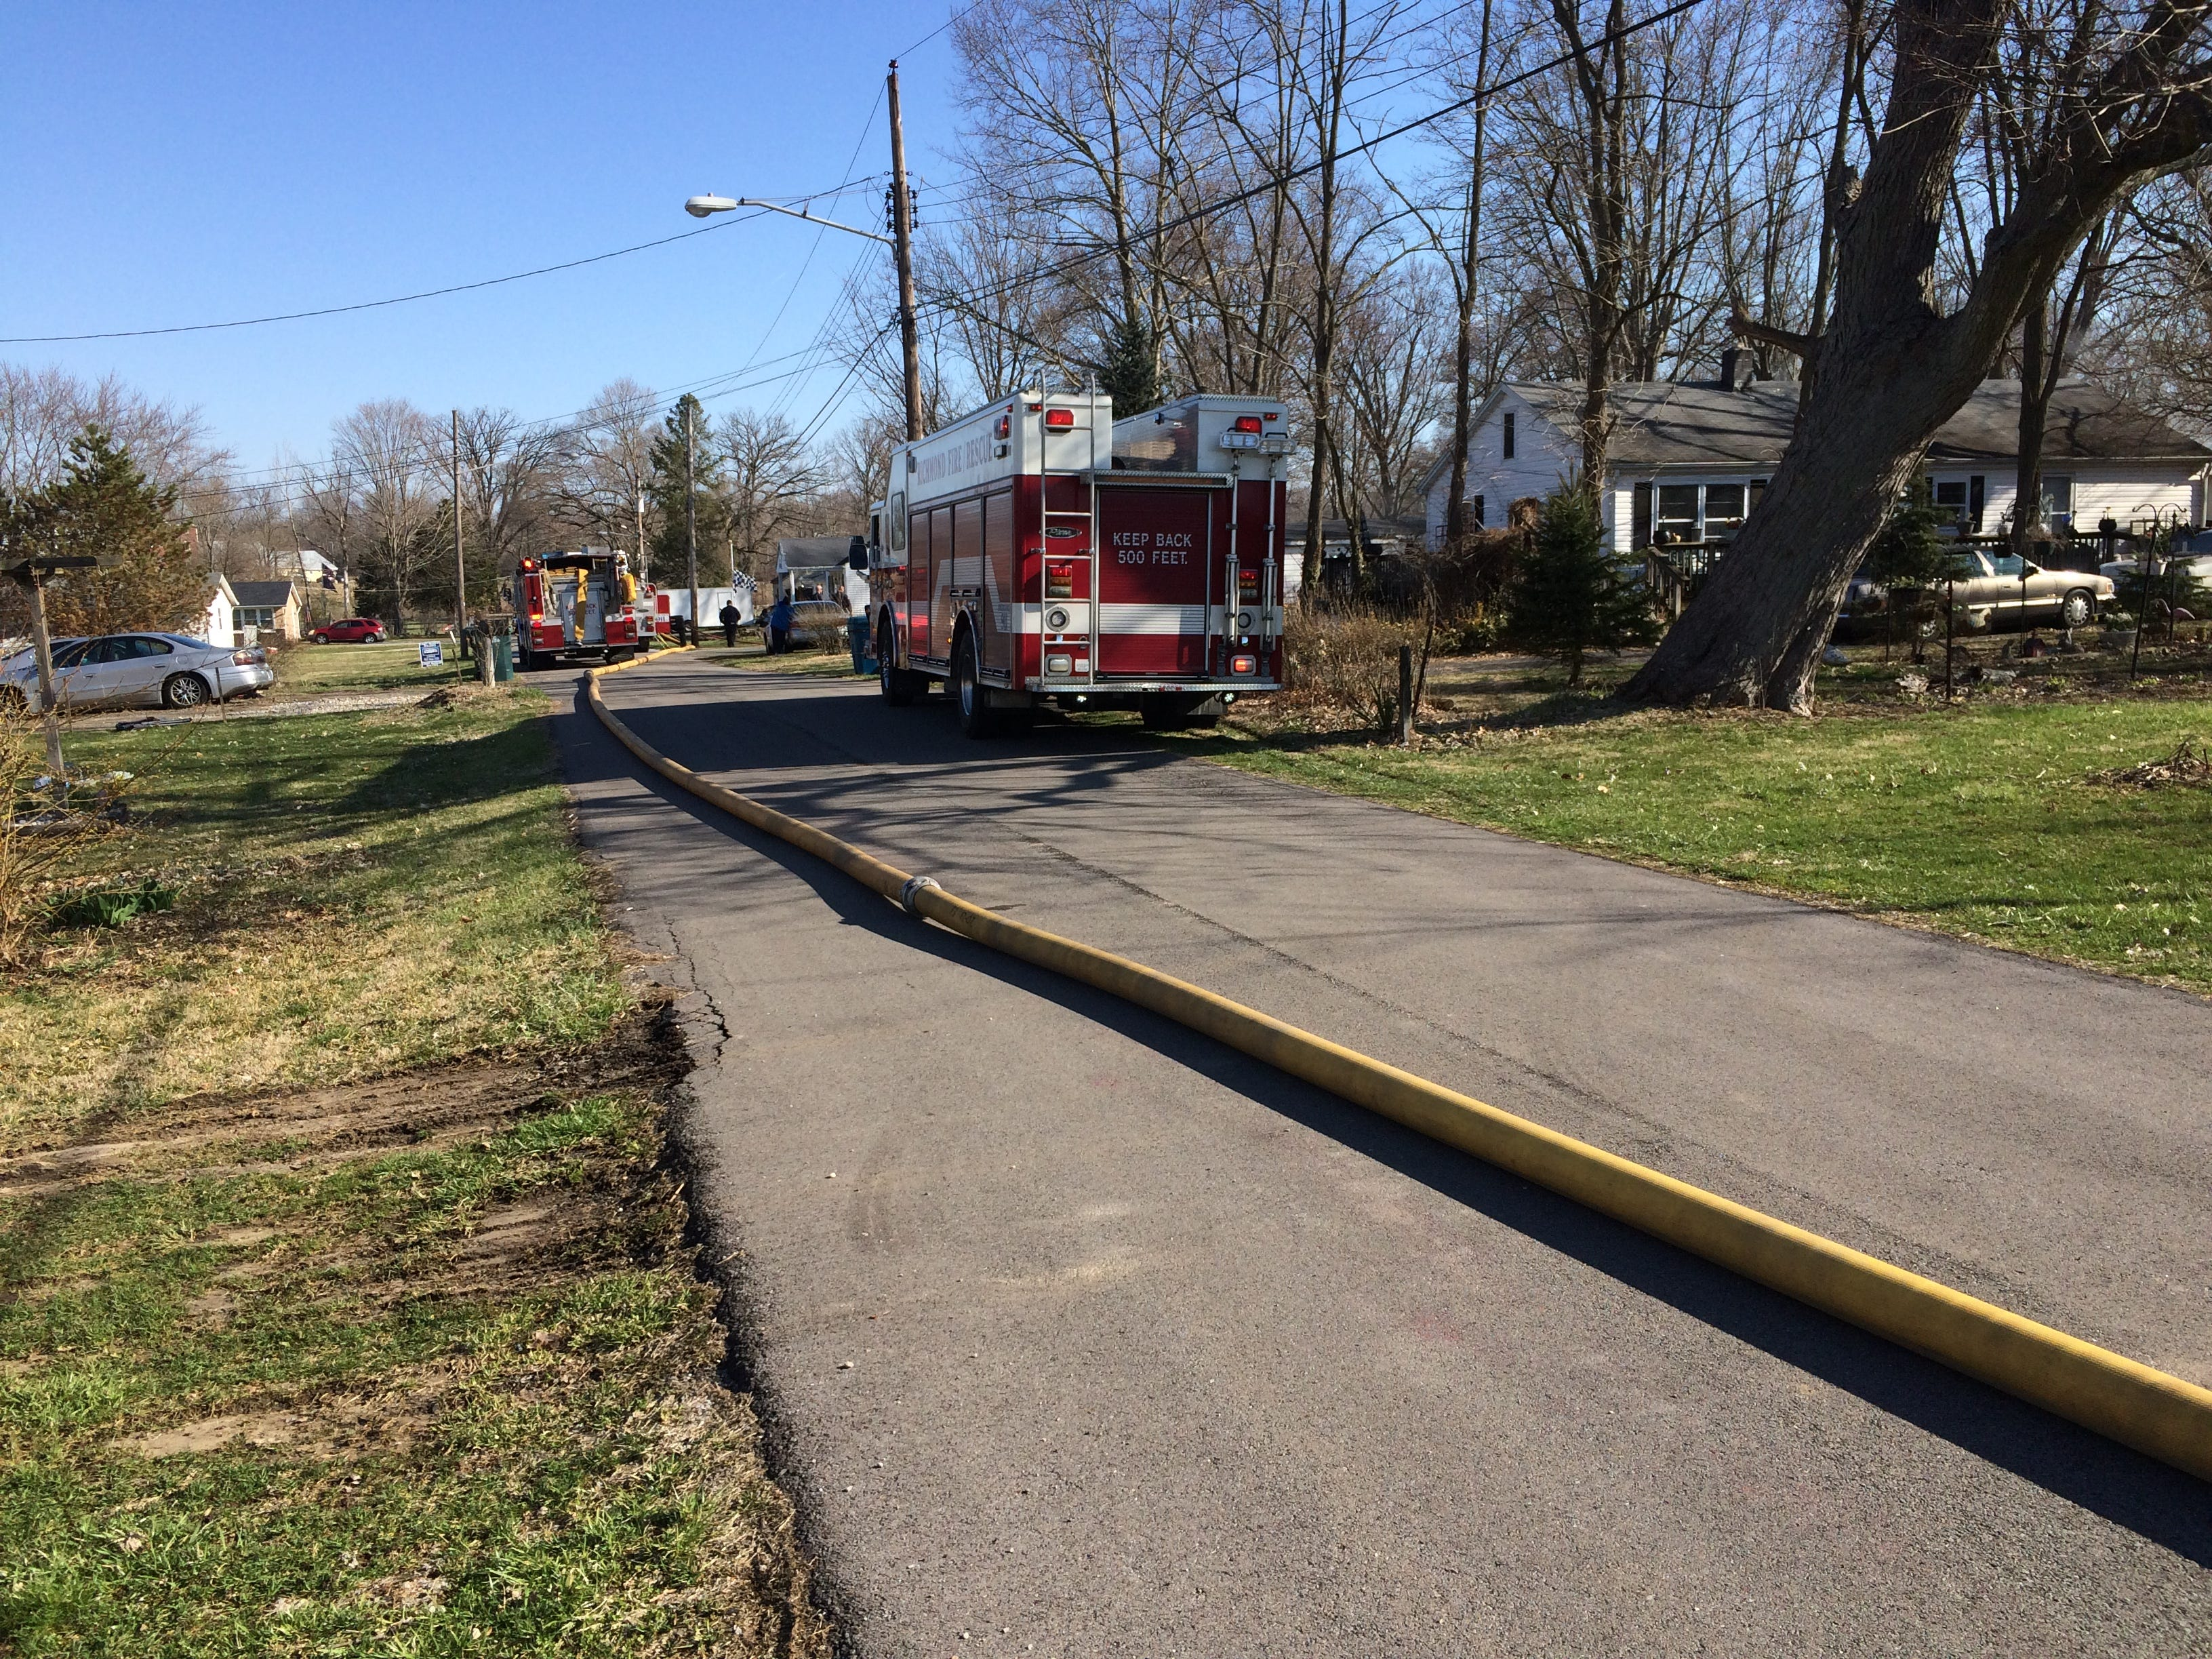 Richmond Fire Department was called to a house fire Wednesday morning in the 2100 block of South 11th Street.